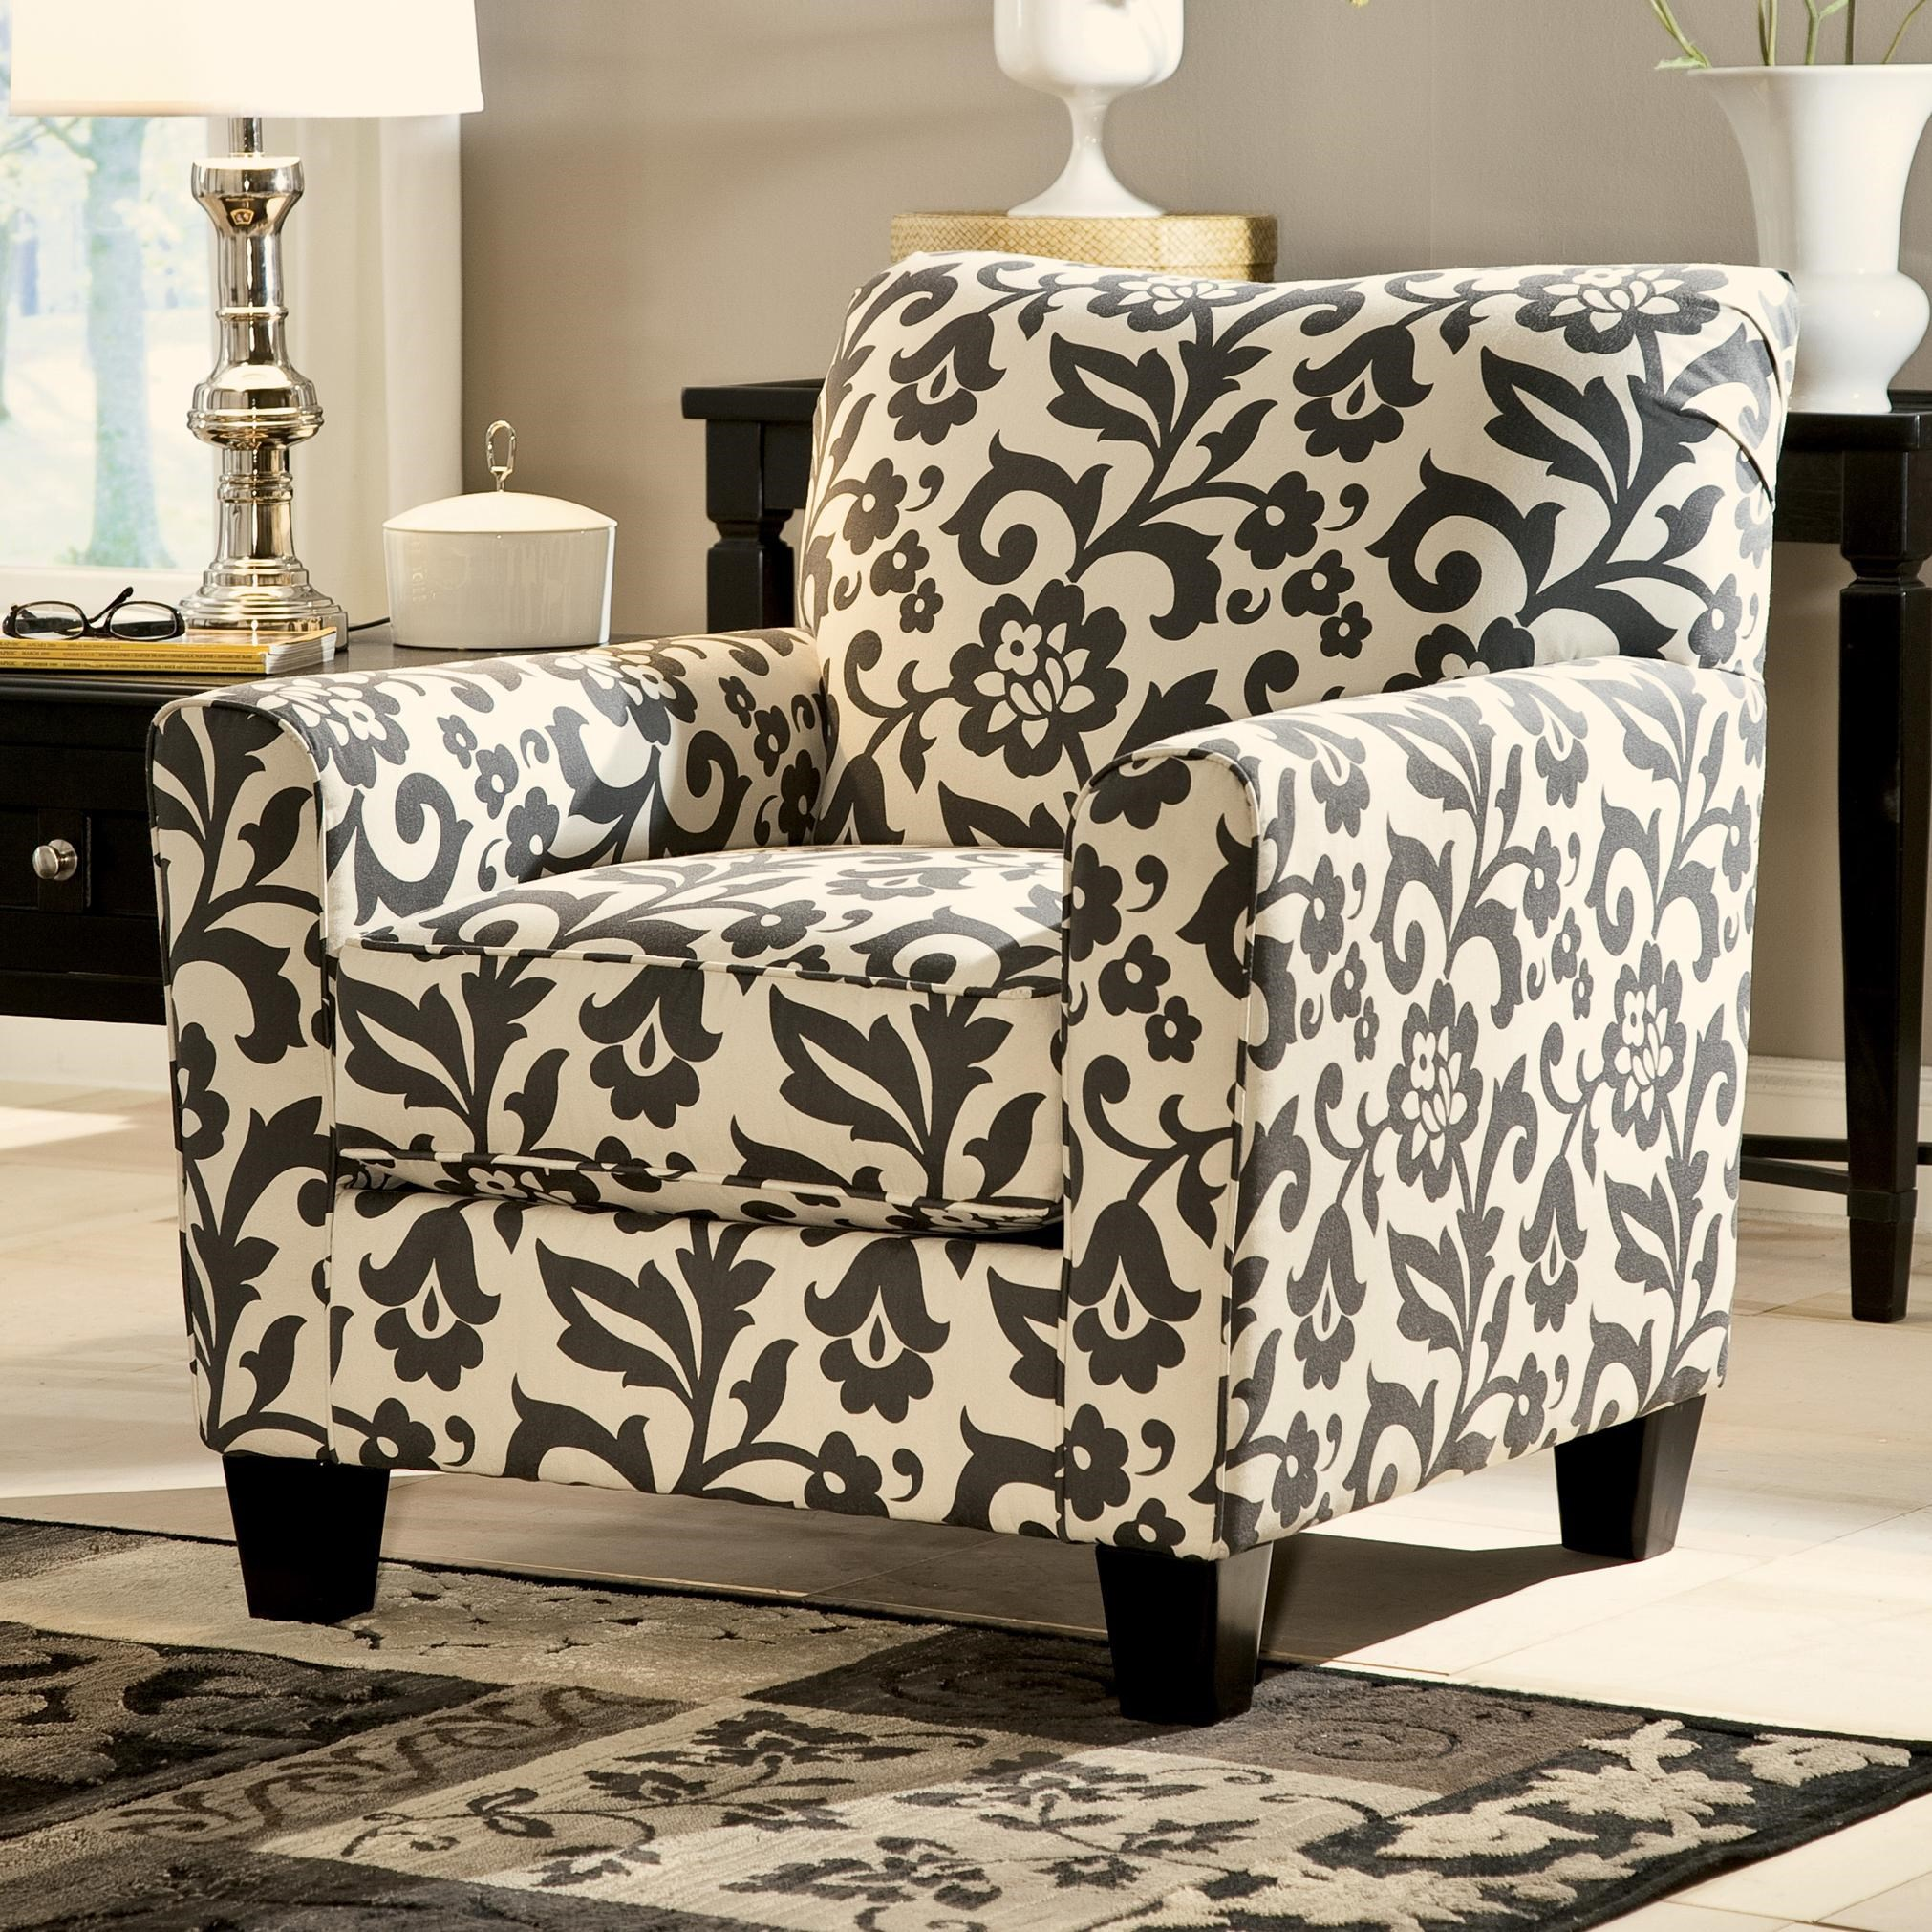 Accent Chairs Ashley Furniture Central Park Accent Chair In Floral Print By Signature Design By Ashley At Rotmans